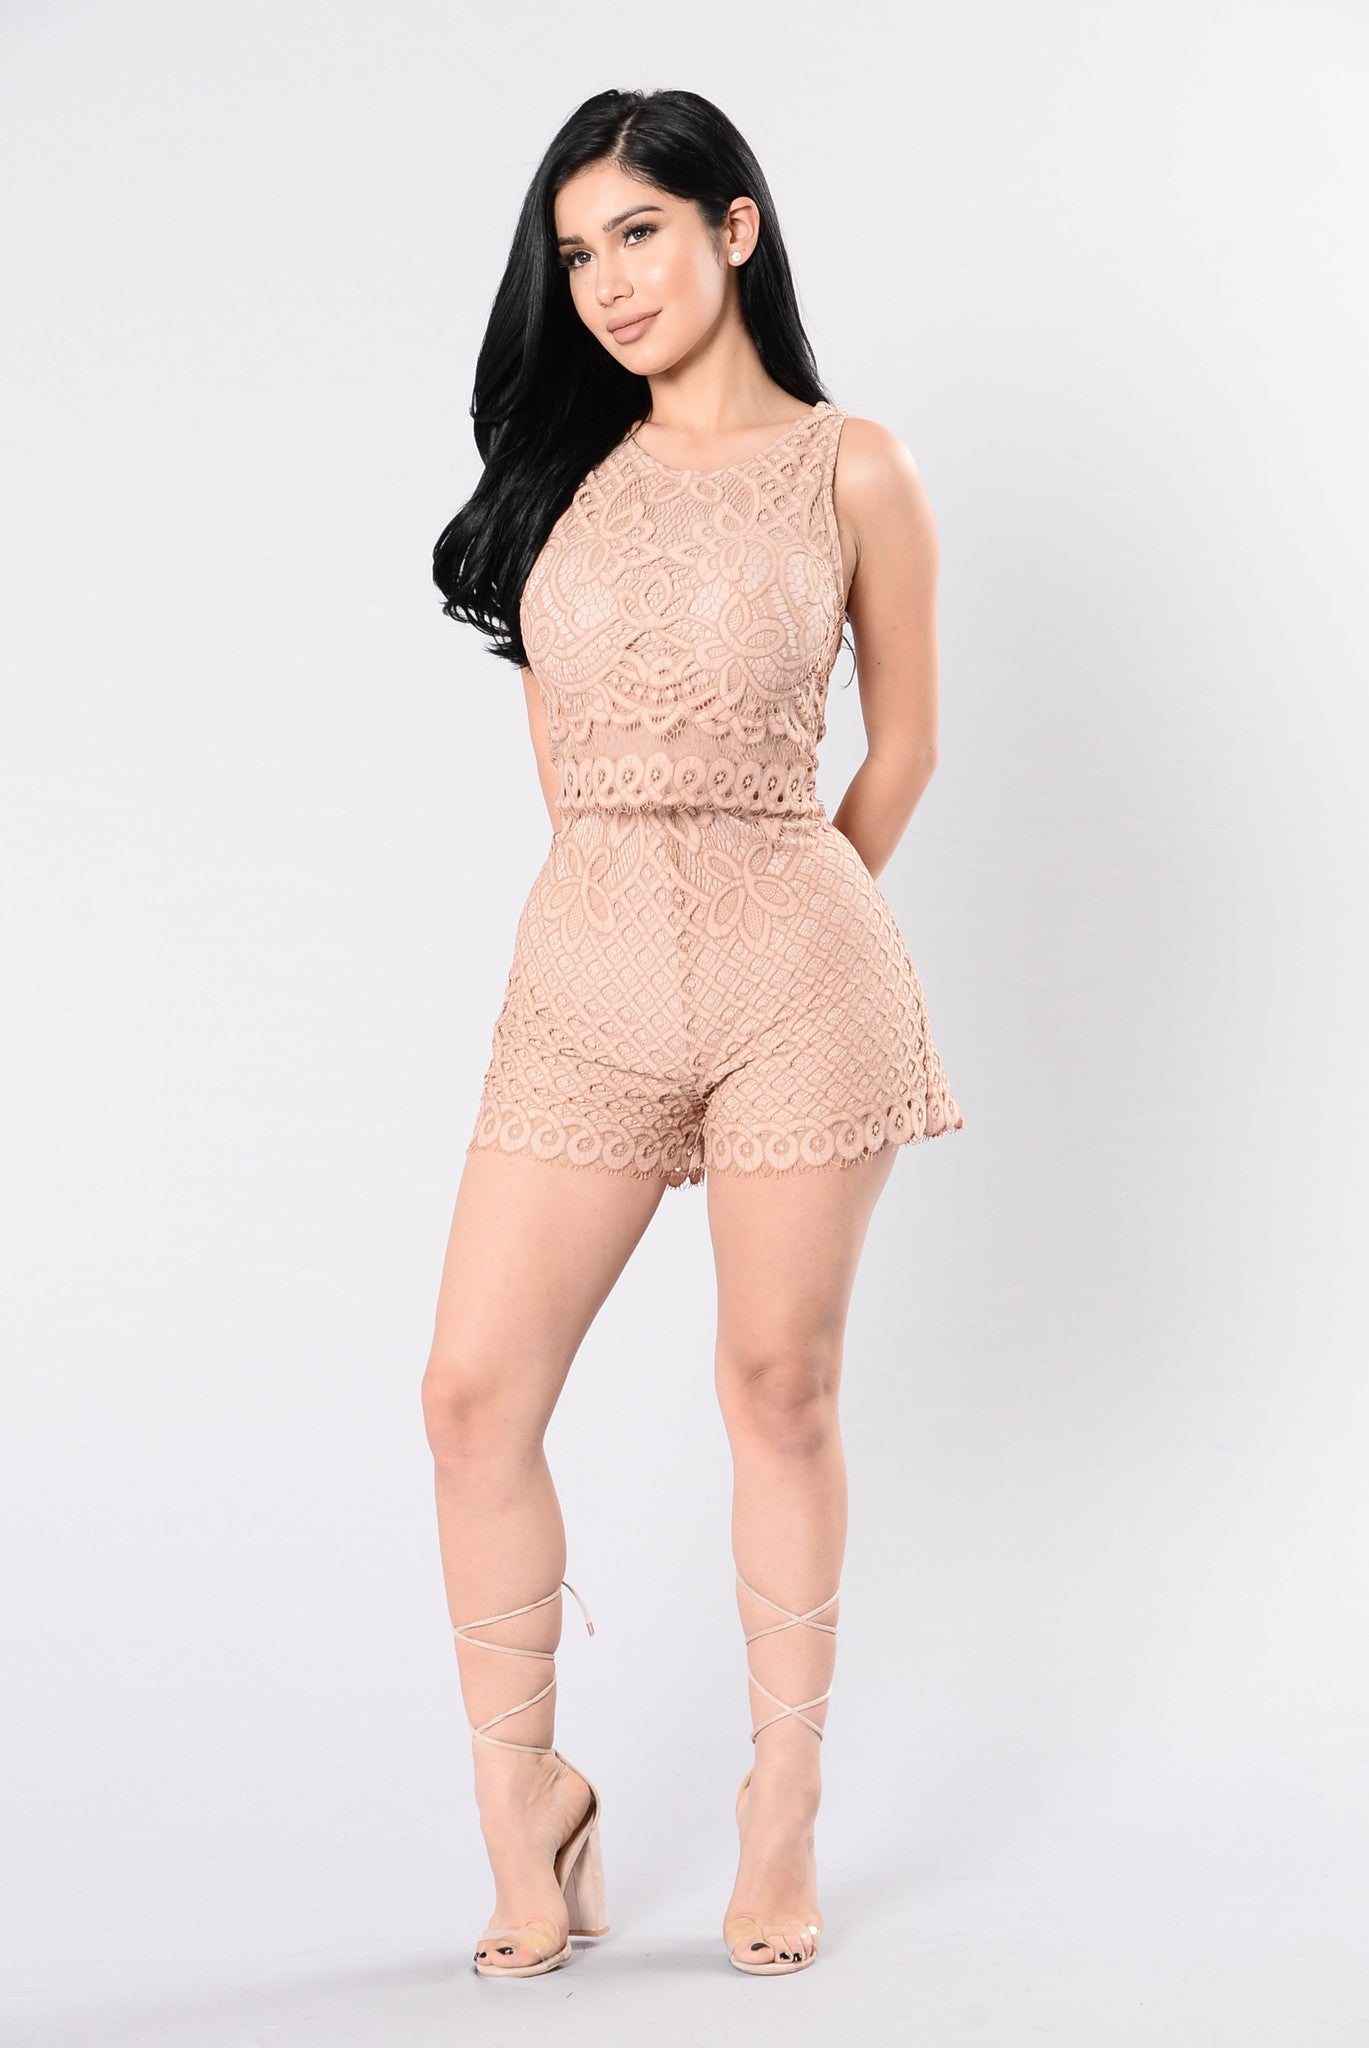 c2bf76863a7 If This Is Love Rompers - Dark Mauve